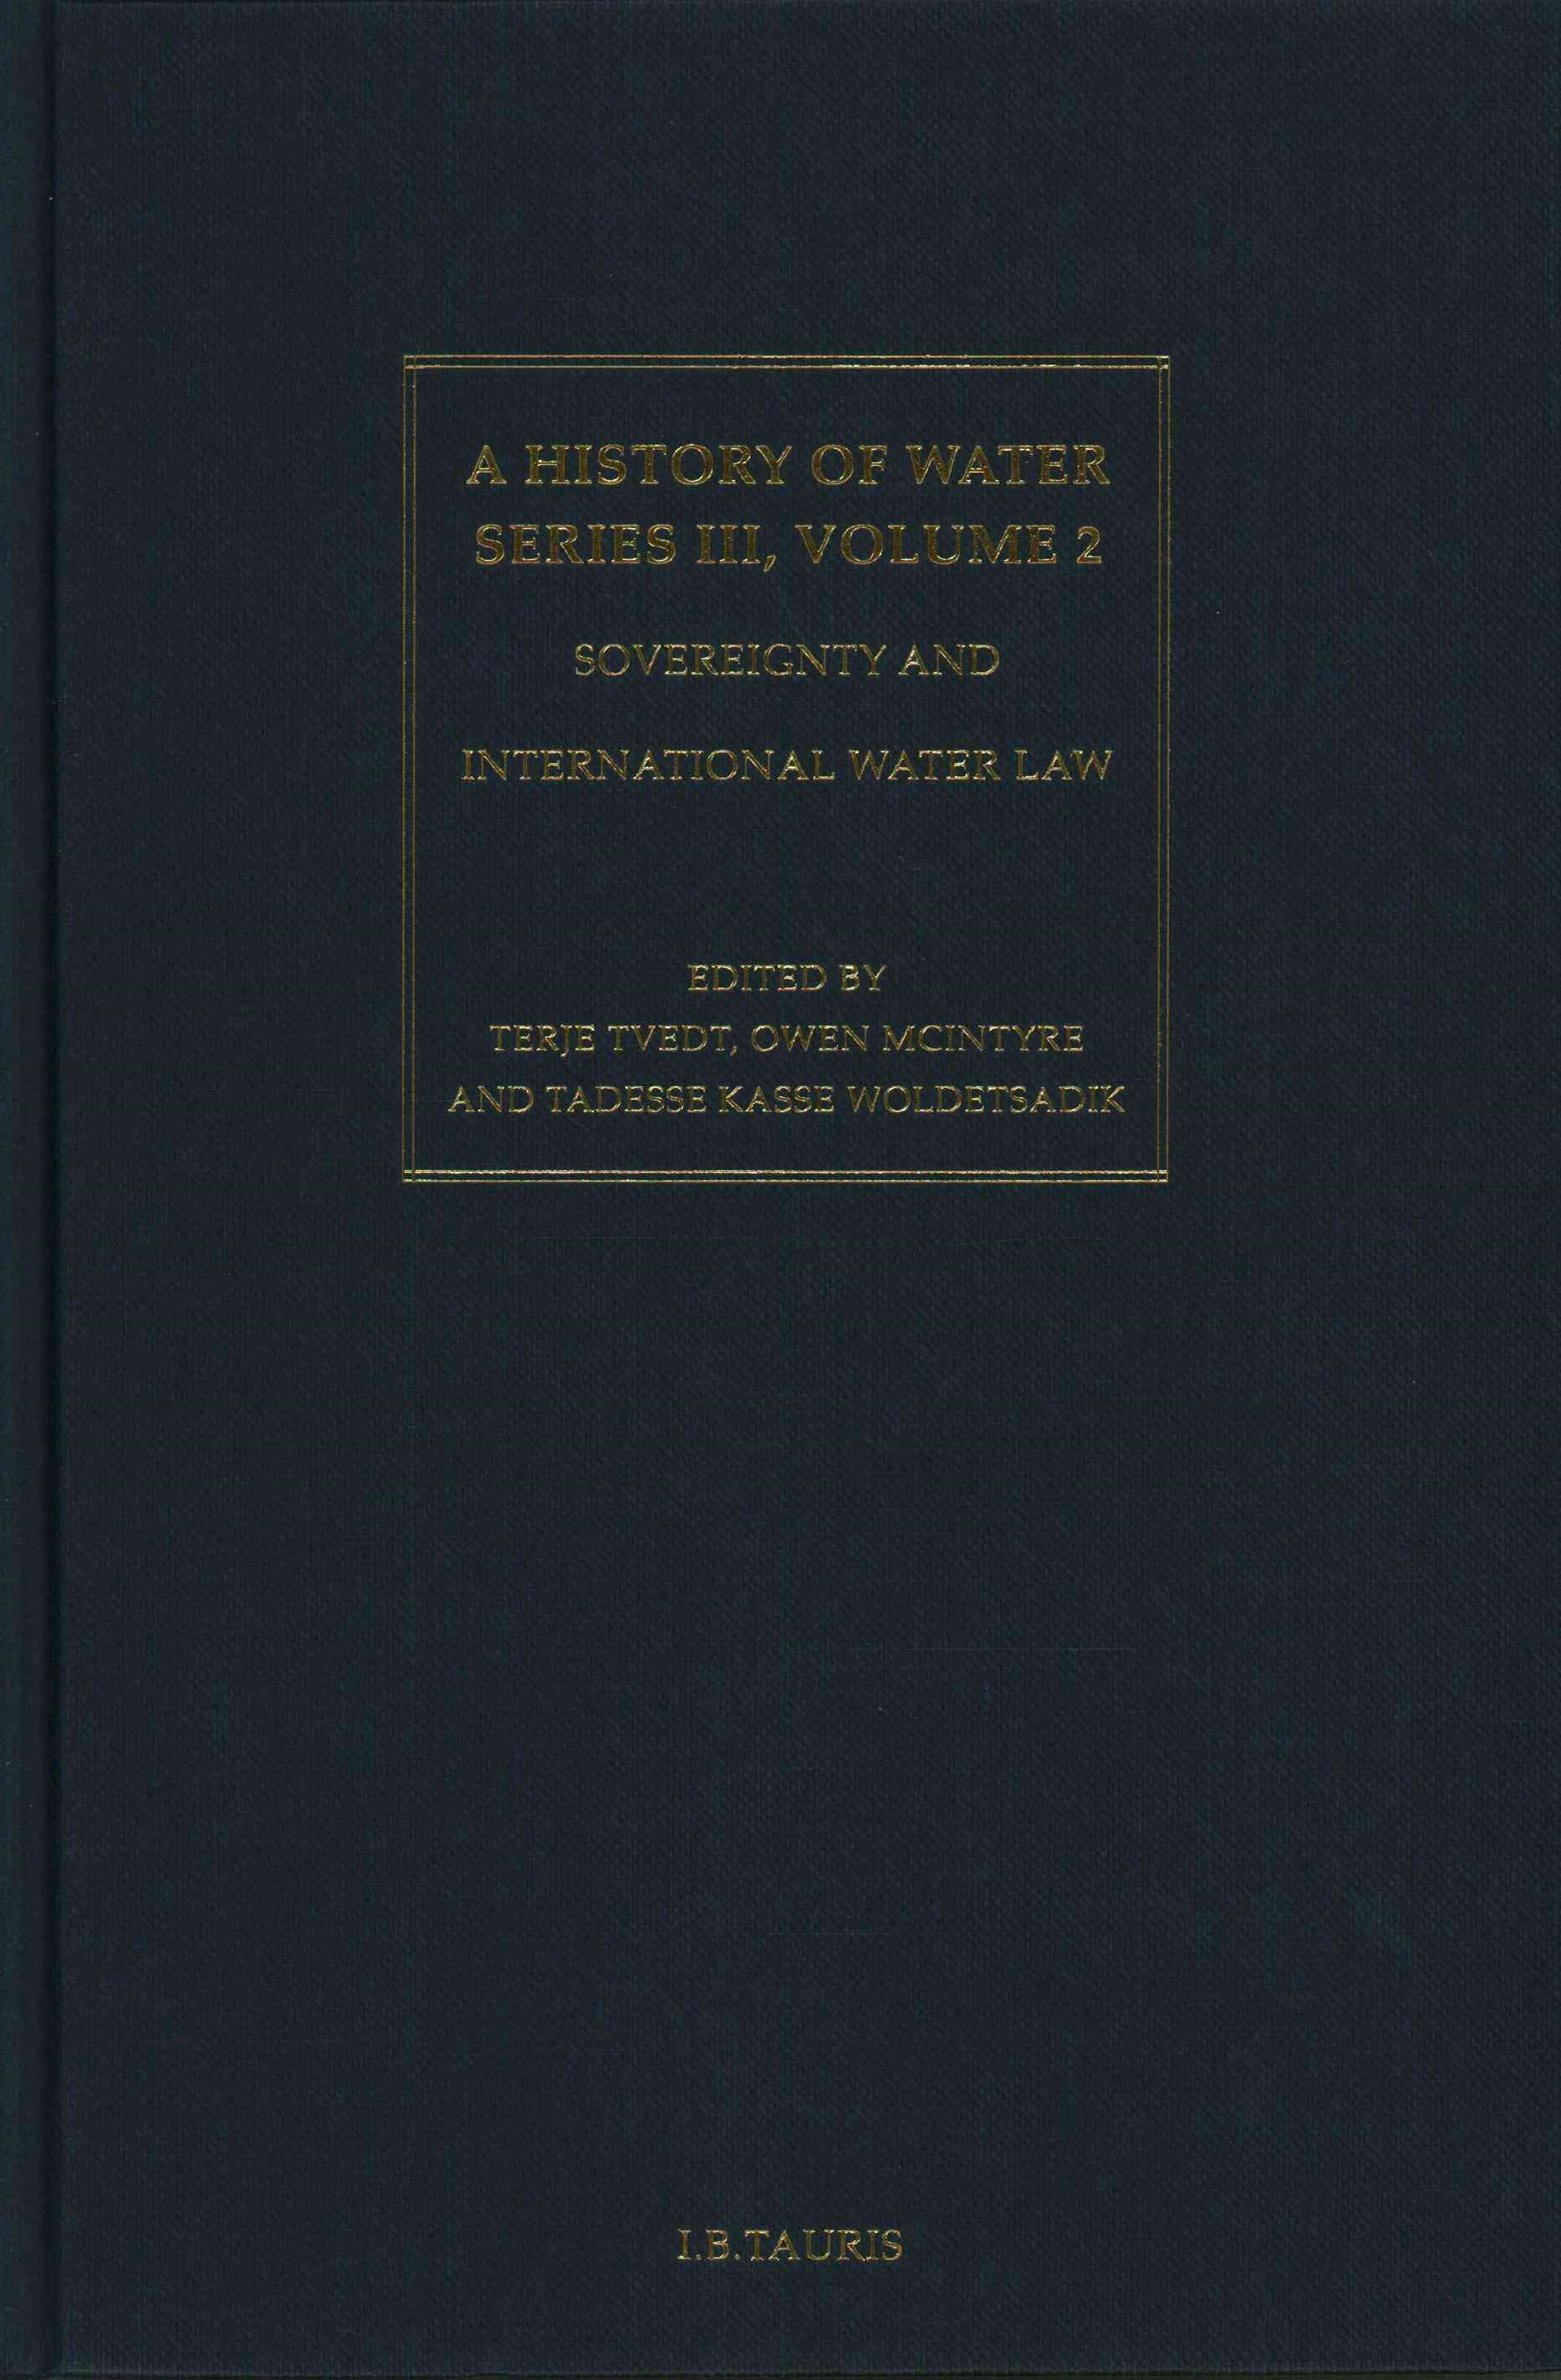 Water Control and River Biographies